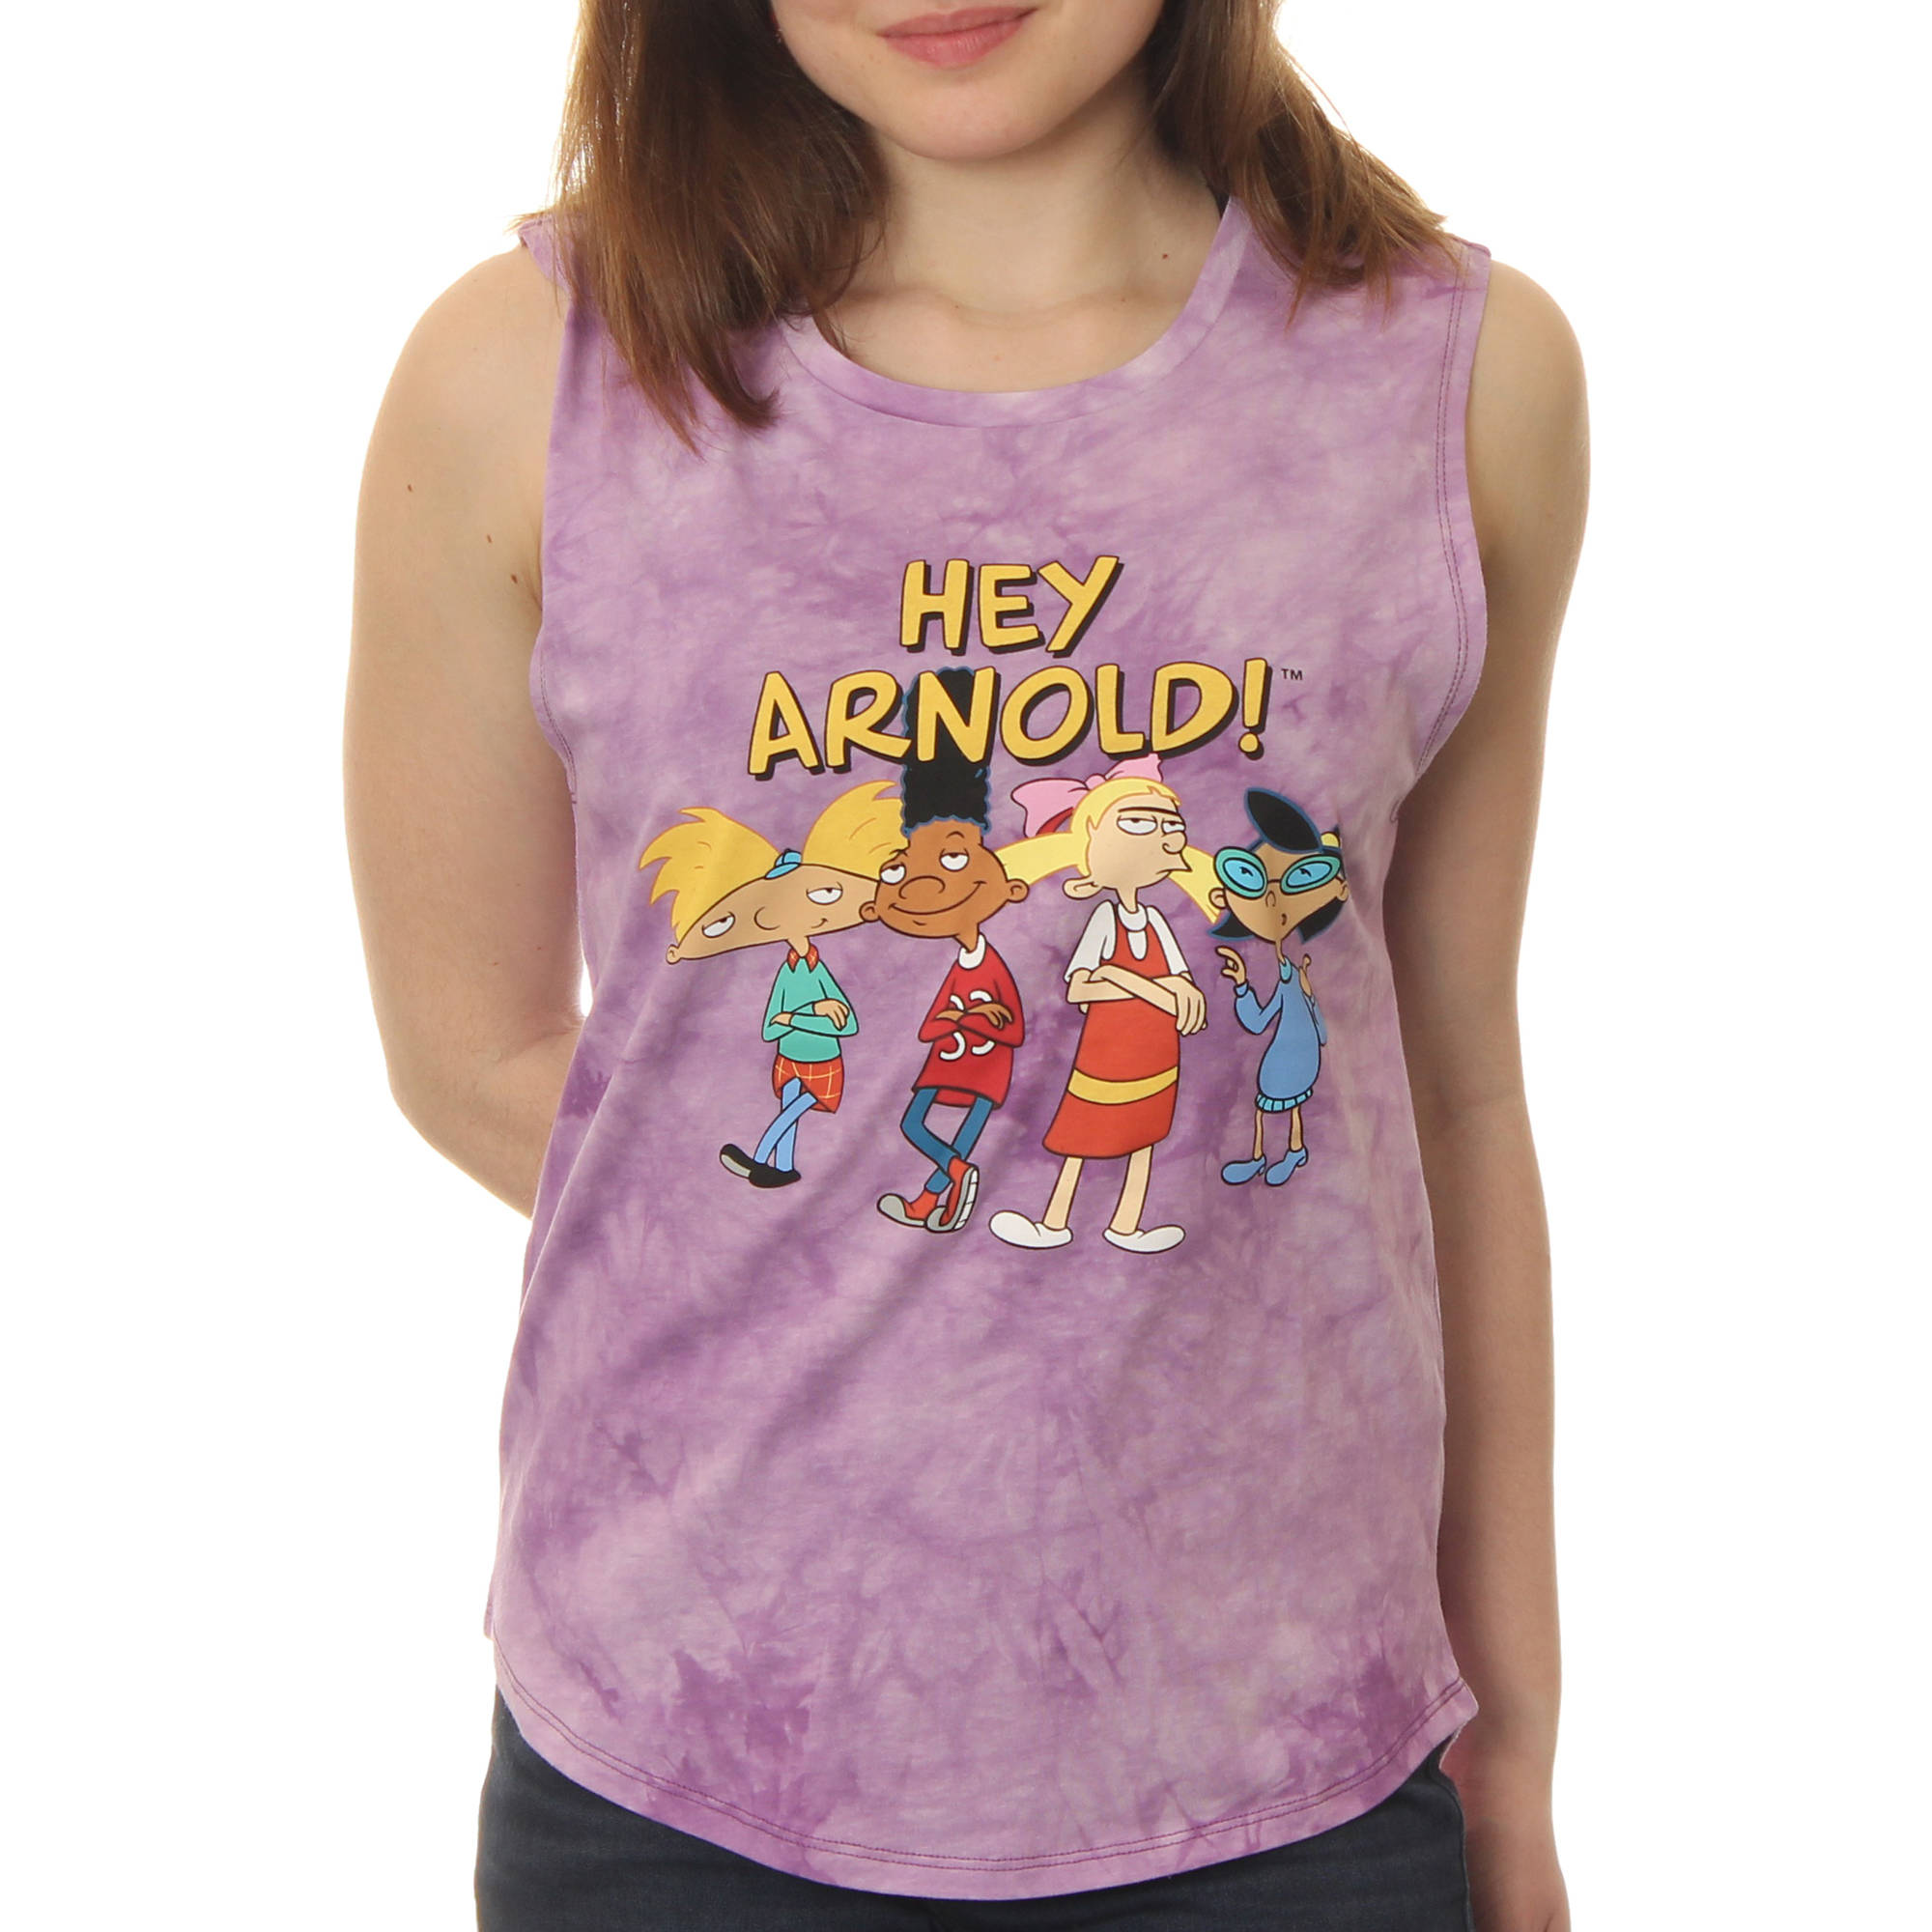 Hey Arnold! Juniors' Standing Group shot Muscle Graphic Tank Top With Tie Dye Coloring